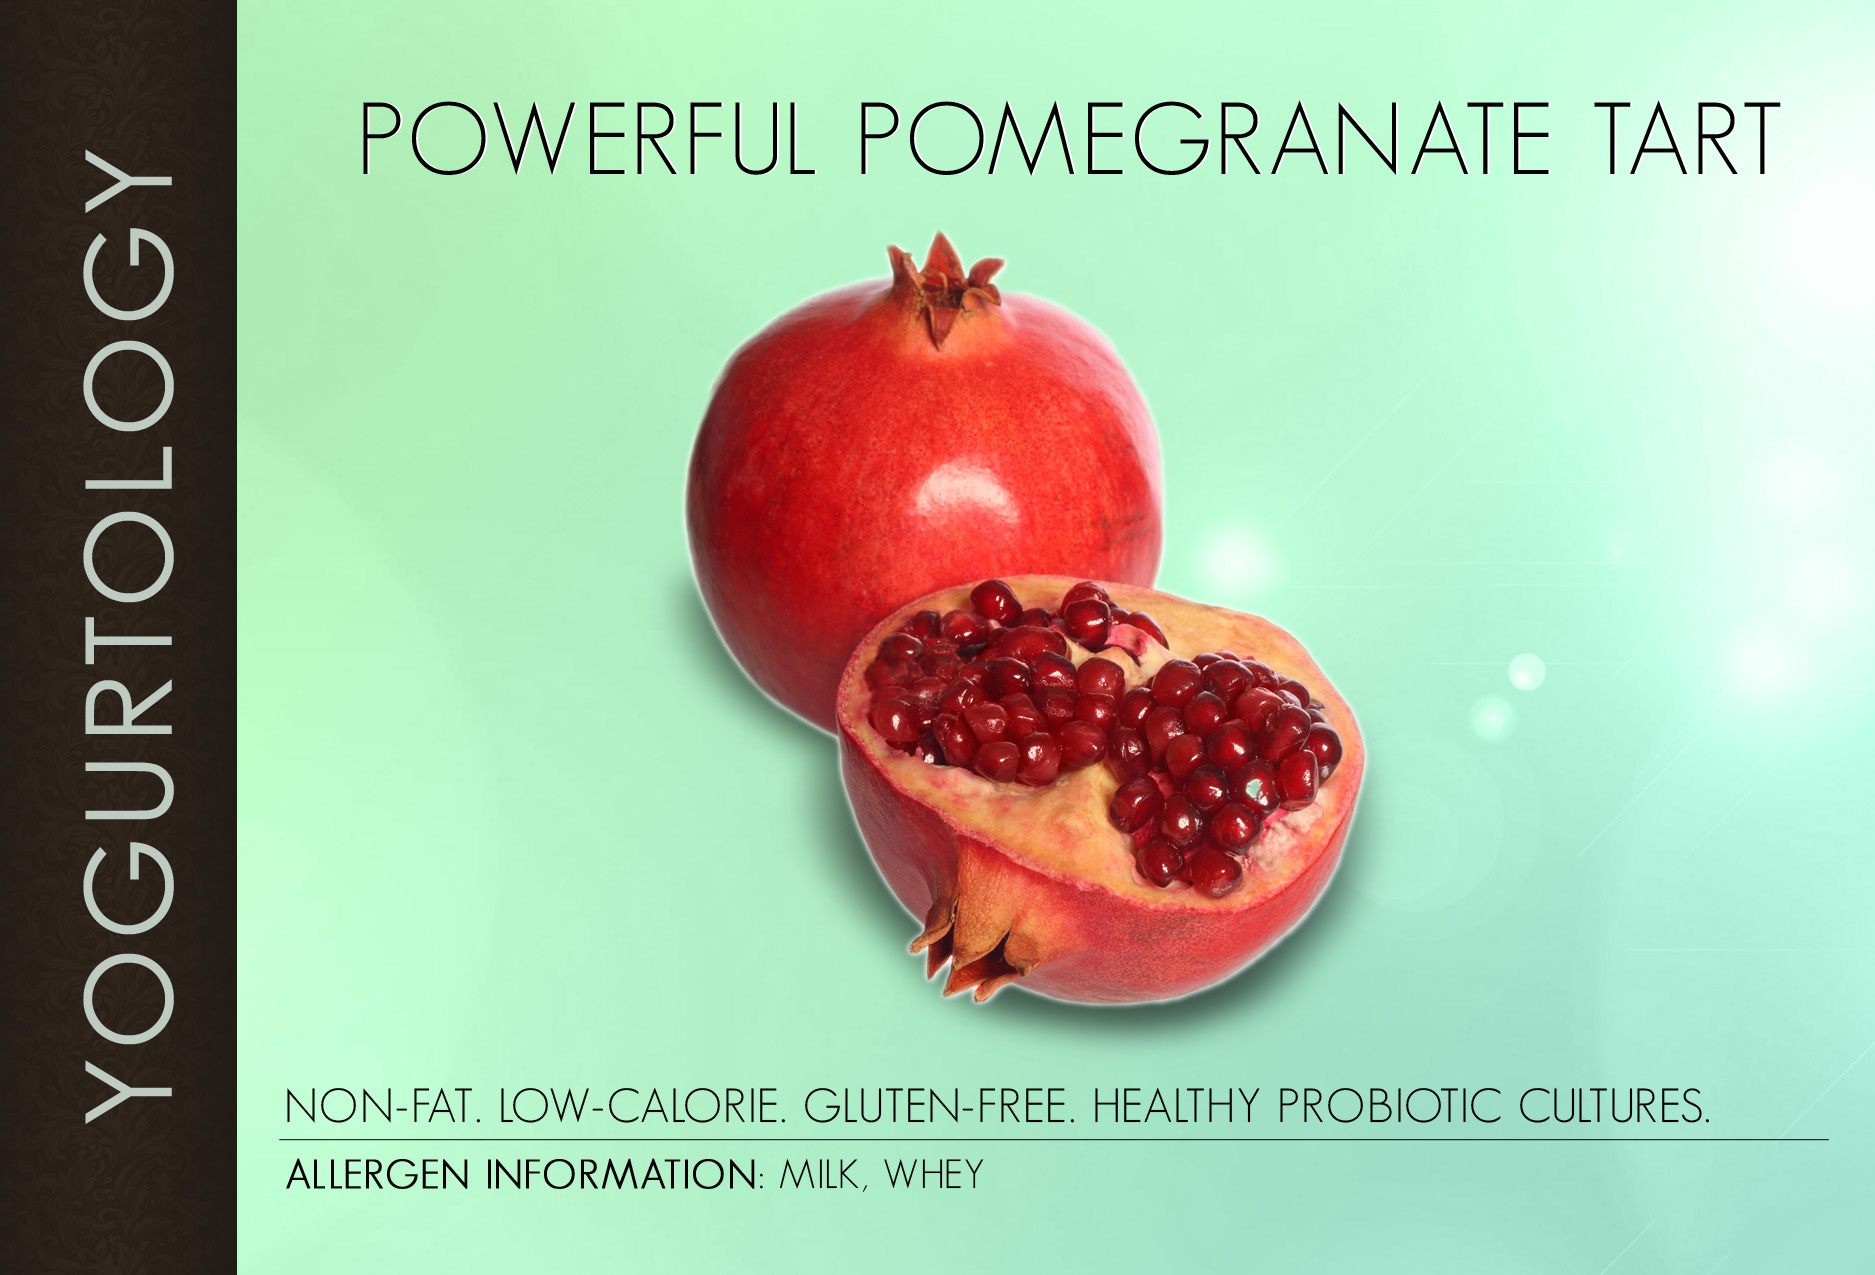 Powerful Pomegranate Tart